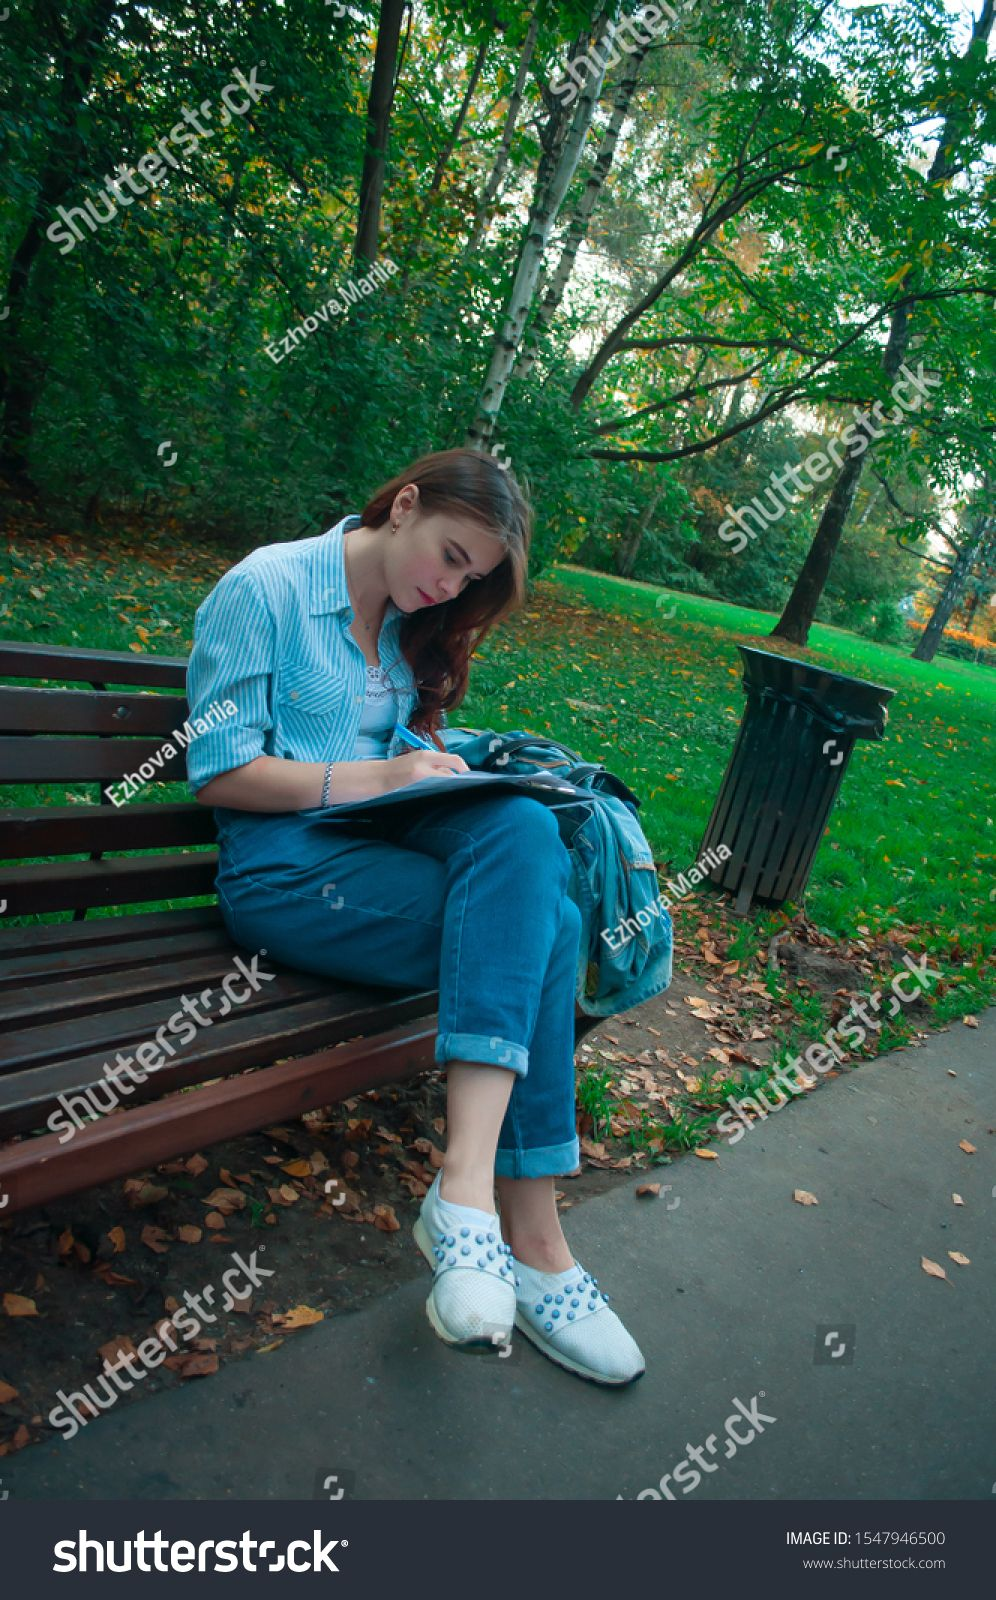 Young Beautiful Happy Girl Sitting In The Park On A Bench Smiling And Making Notes The Concept Of Working Outdoors Freelance Sponsored Aff Sitting Park